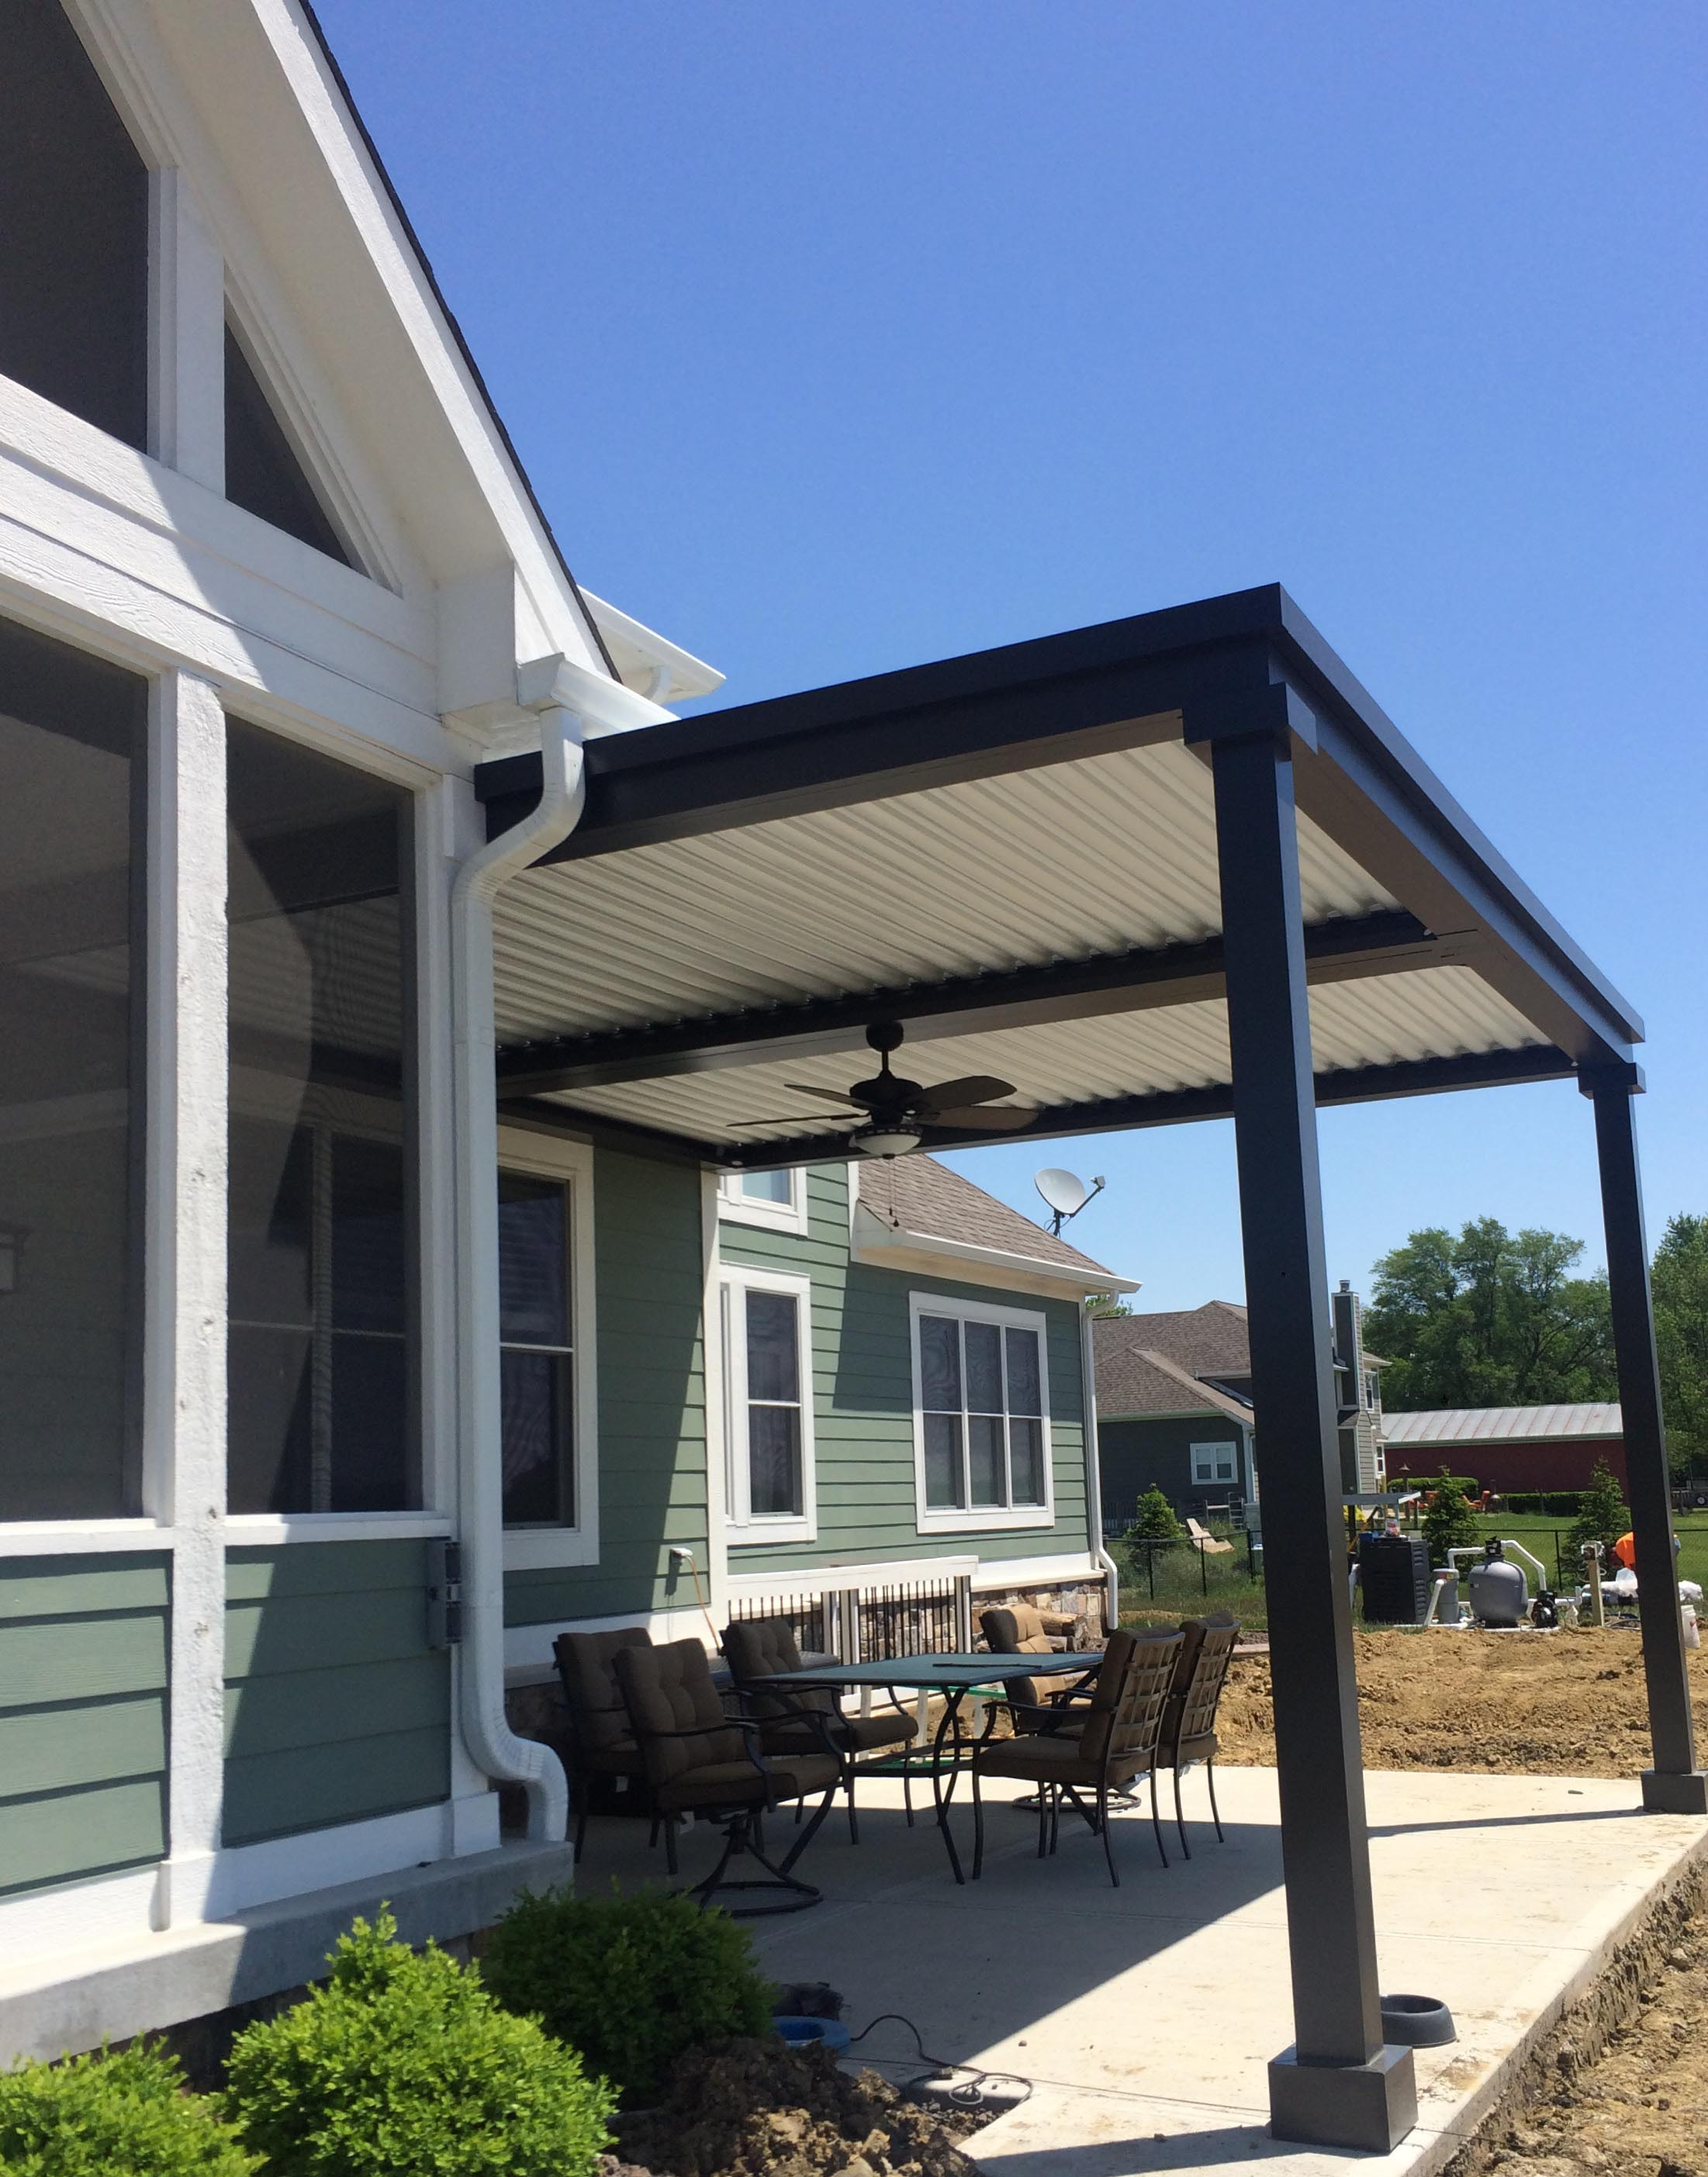 Pittsboro, IN - Deck cover - Attached